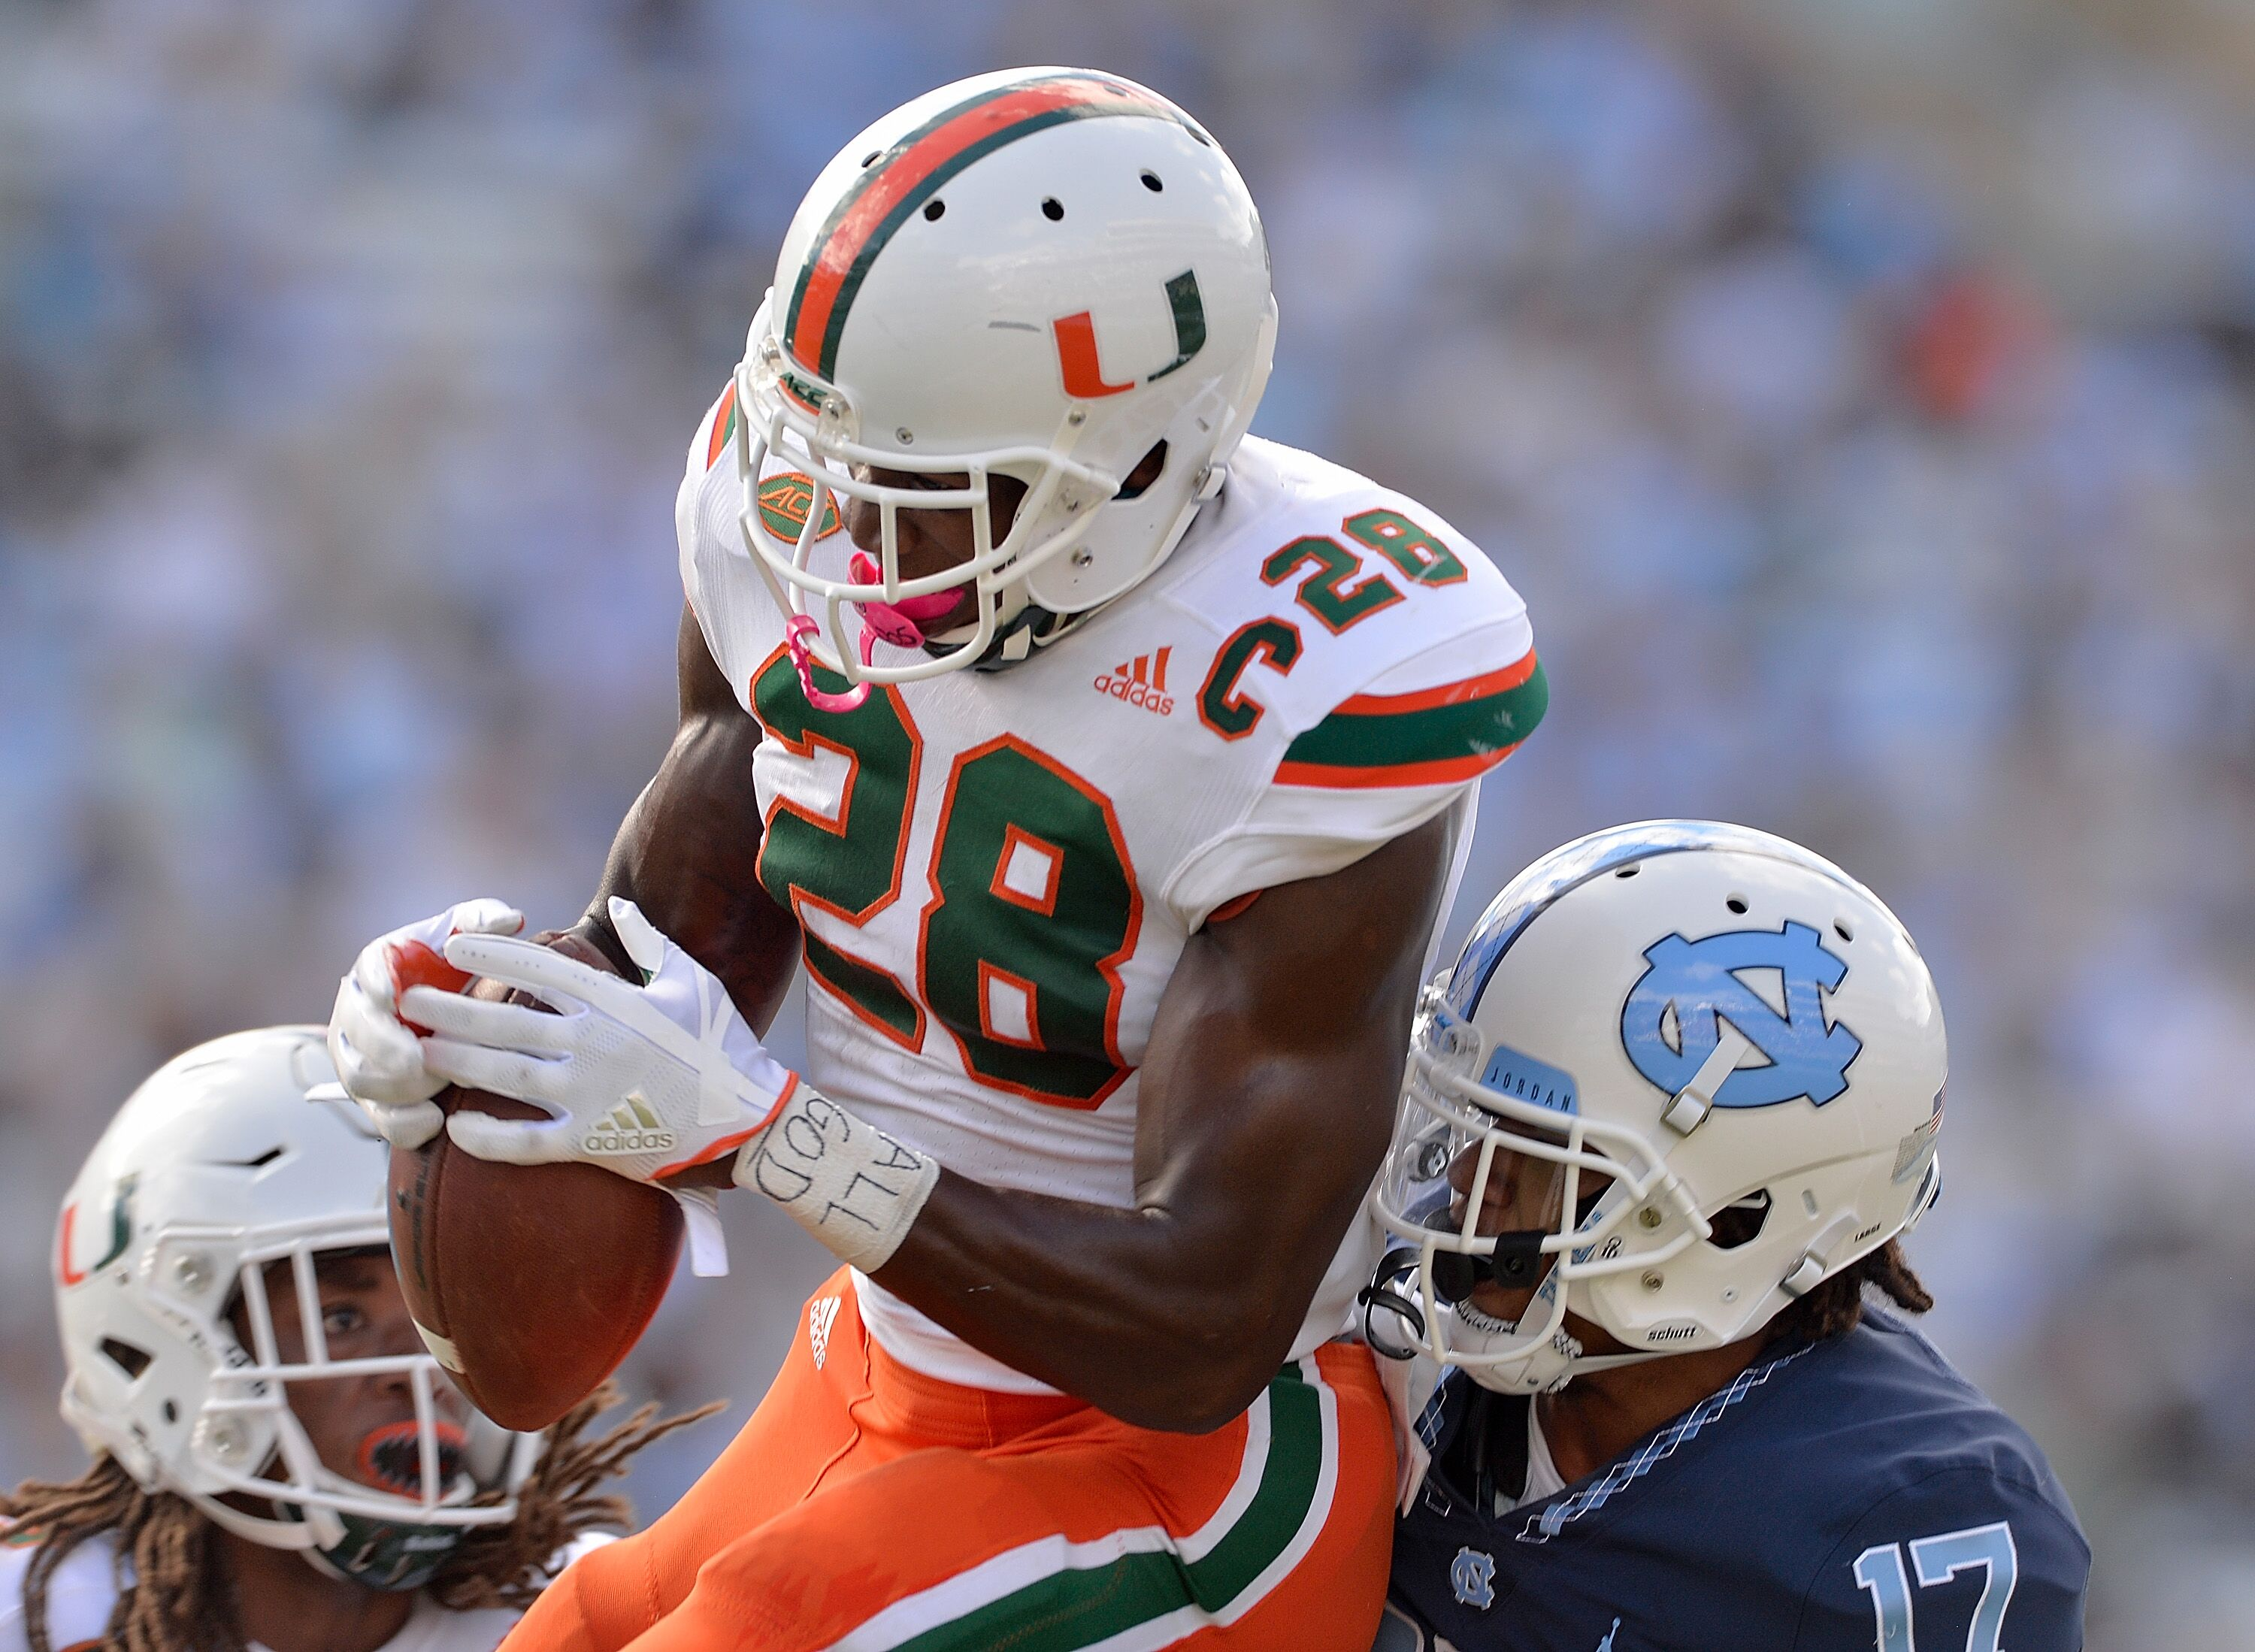 Former Miami Hurricanes CB Michael Jackson improving NFL Draft stock